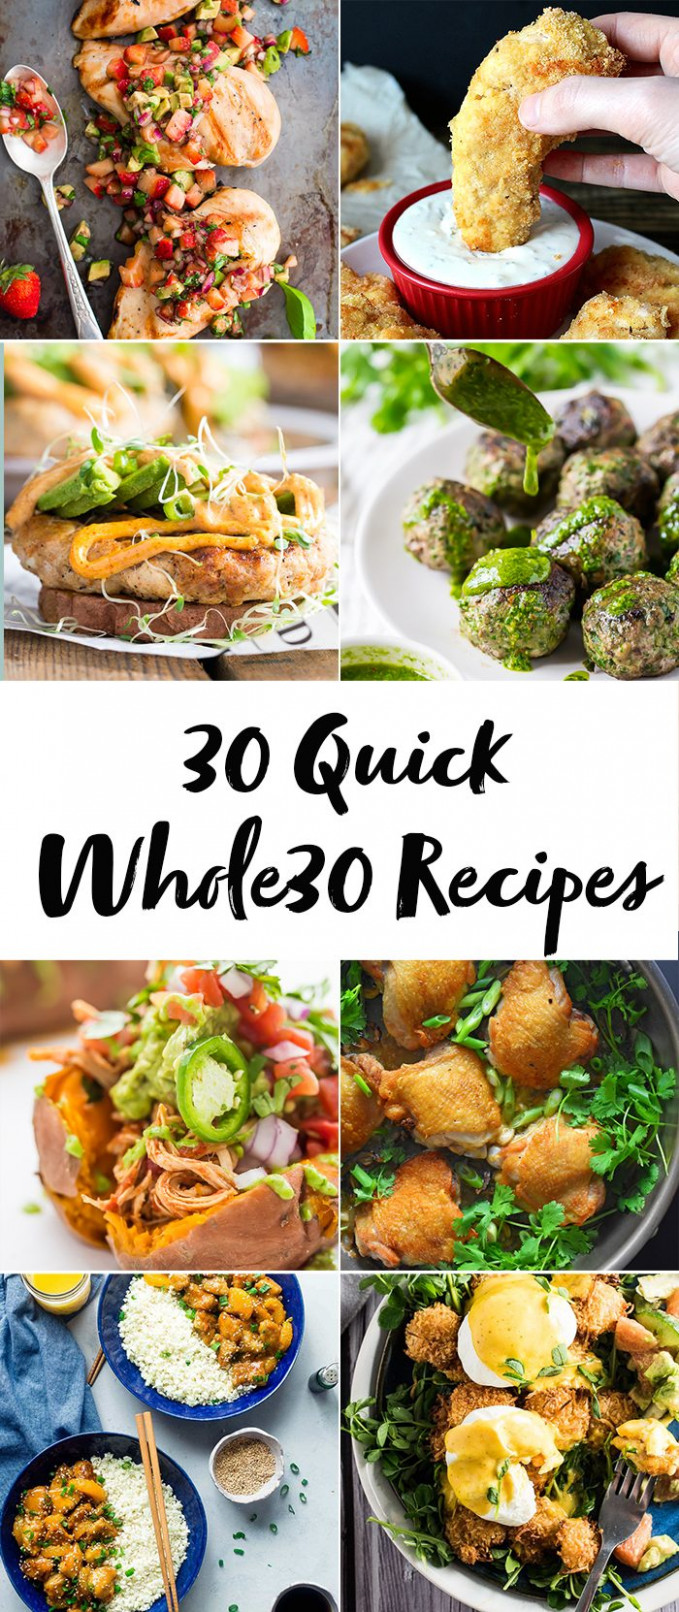 30 Quick Whole30 Recipes (Whole30 Dinner Recipes) - whole30 recipes dinner